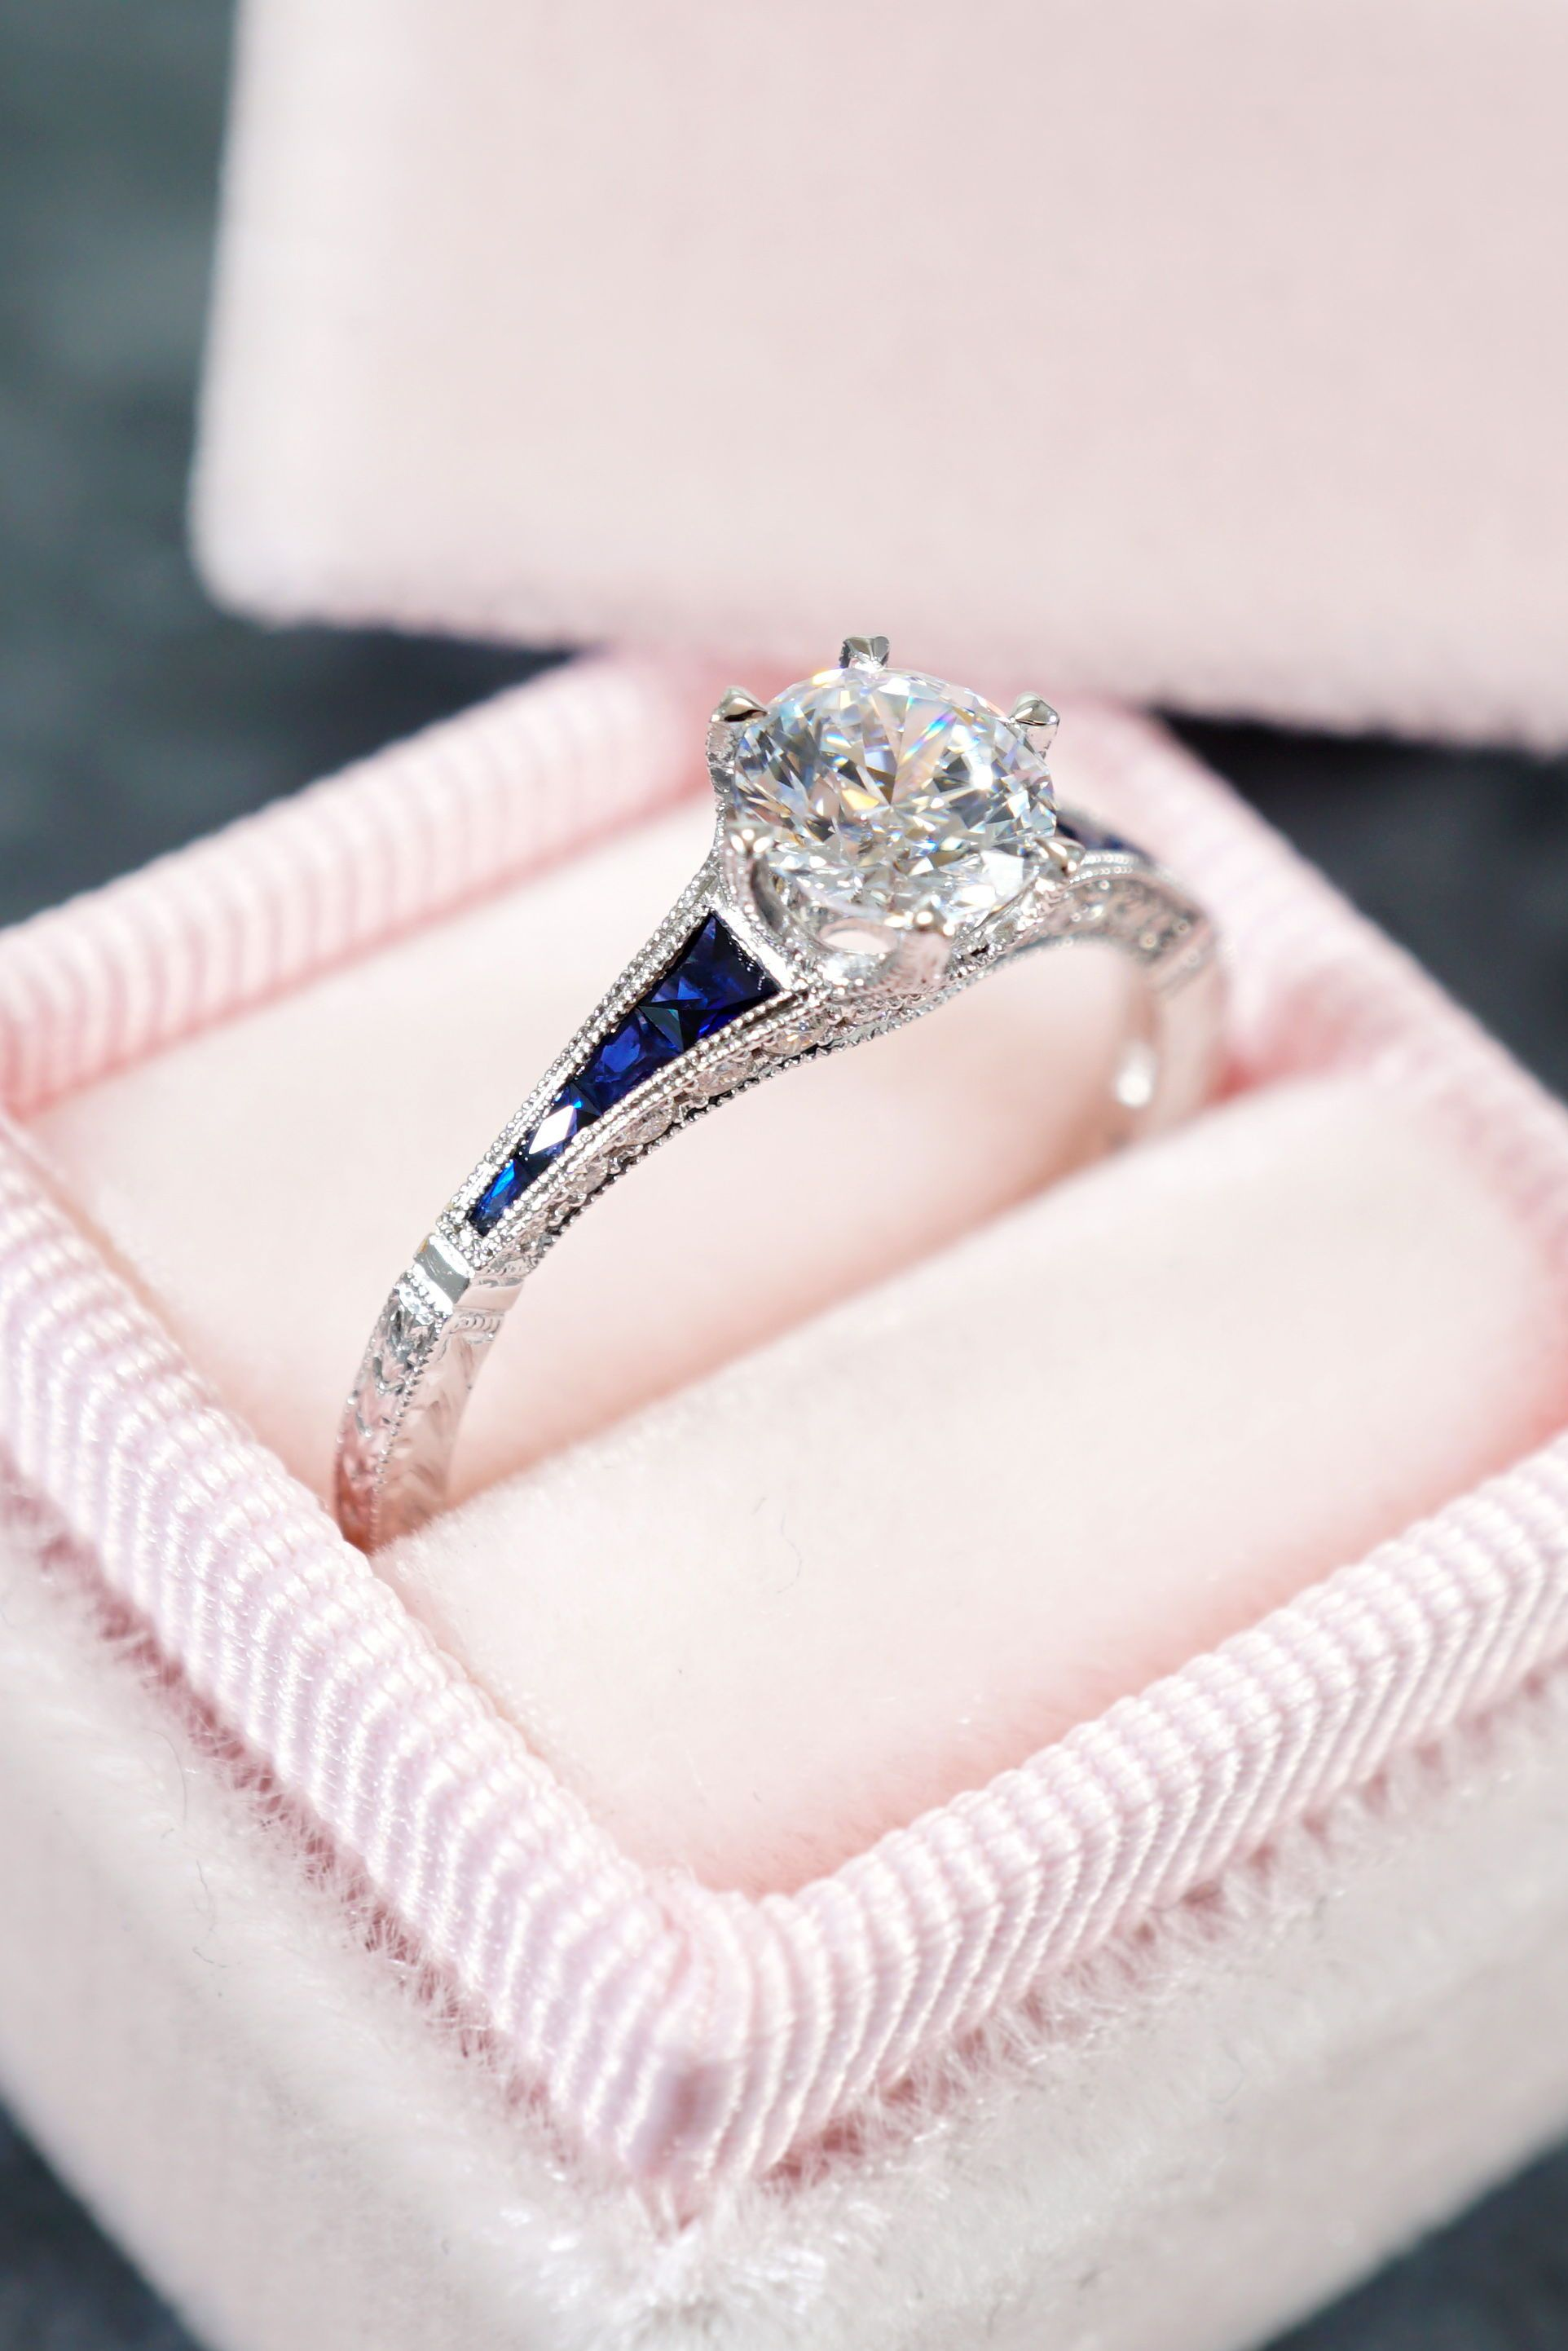 91c79d4557b This gorgeous engagement ring features a round brilliant cut diamond in a  six prong setting at the top of a narrow white gold shank